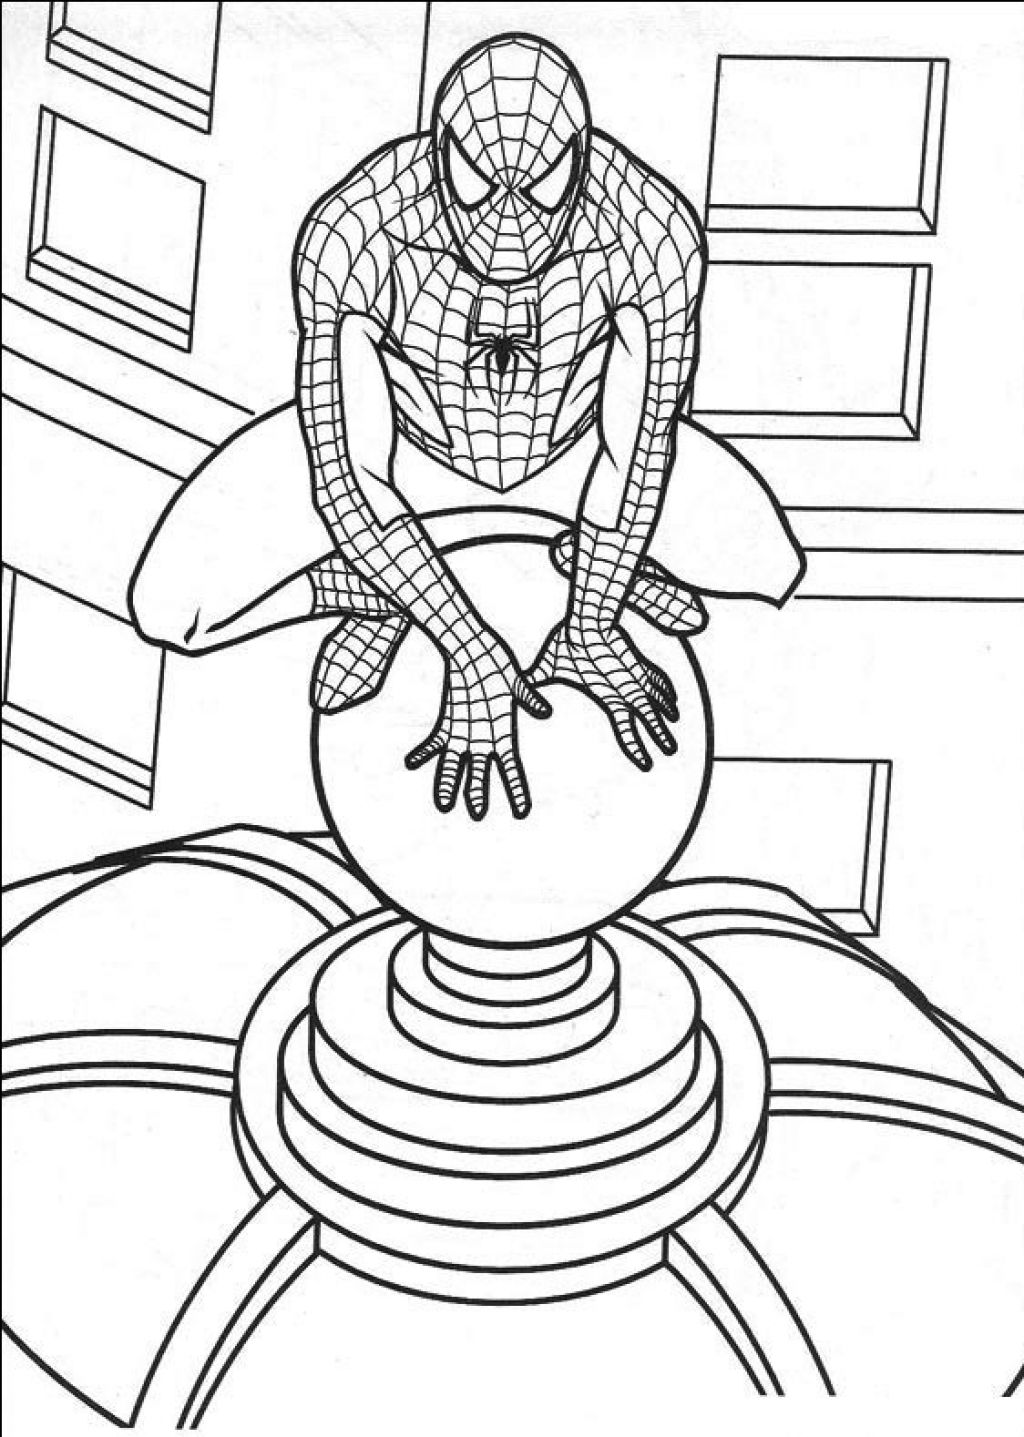 Spiderman Coloring Pages To Print